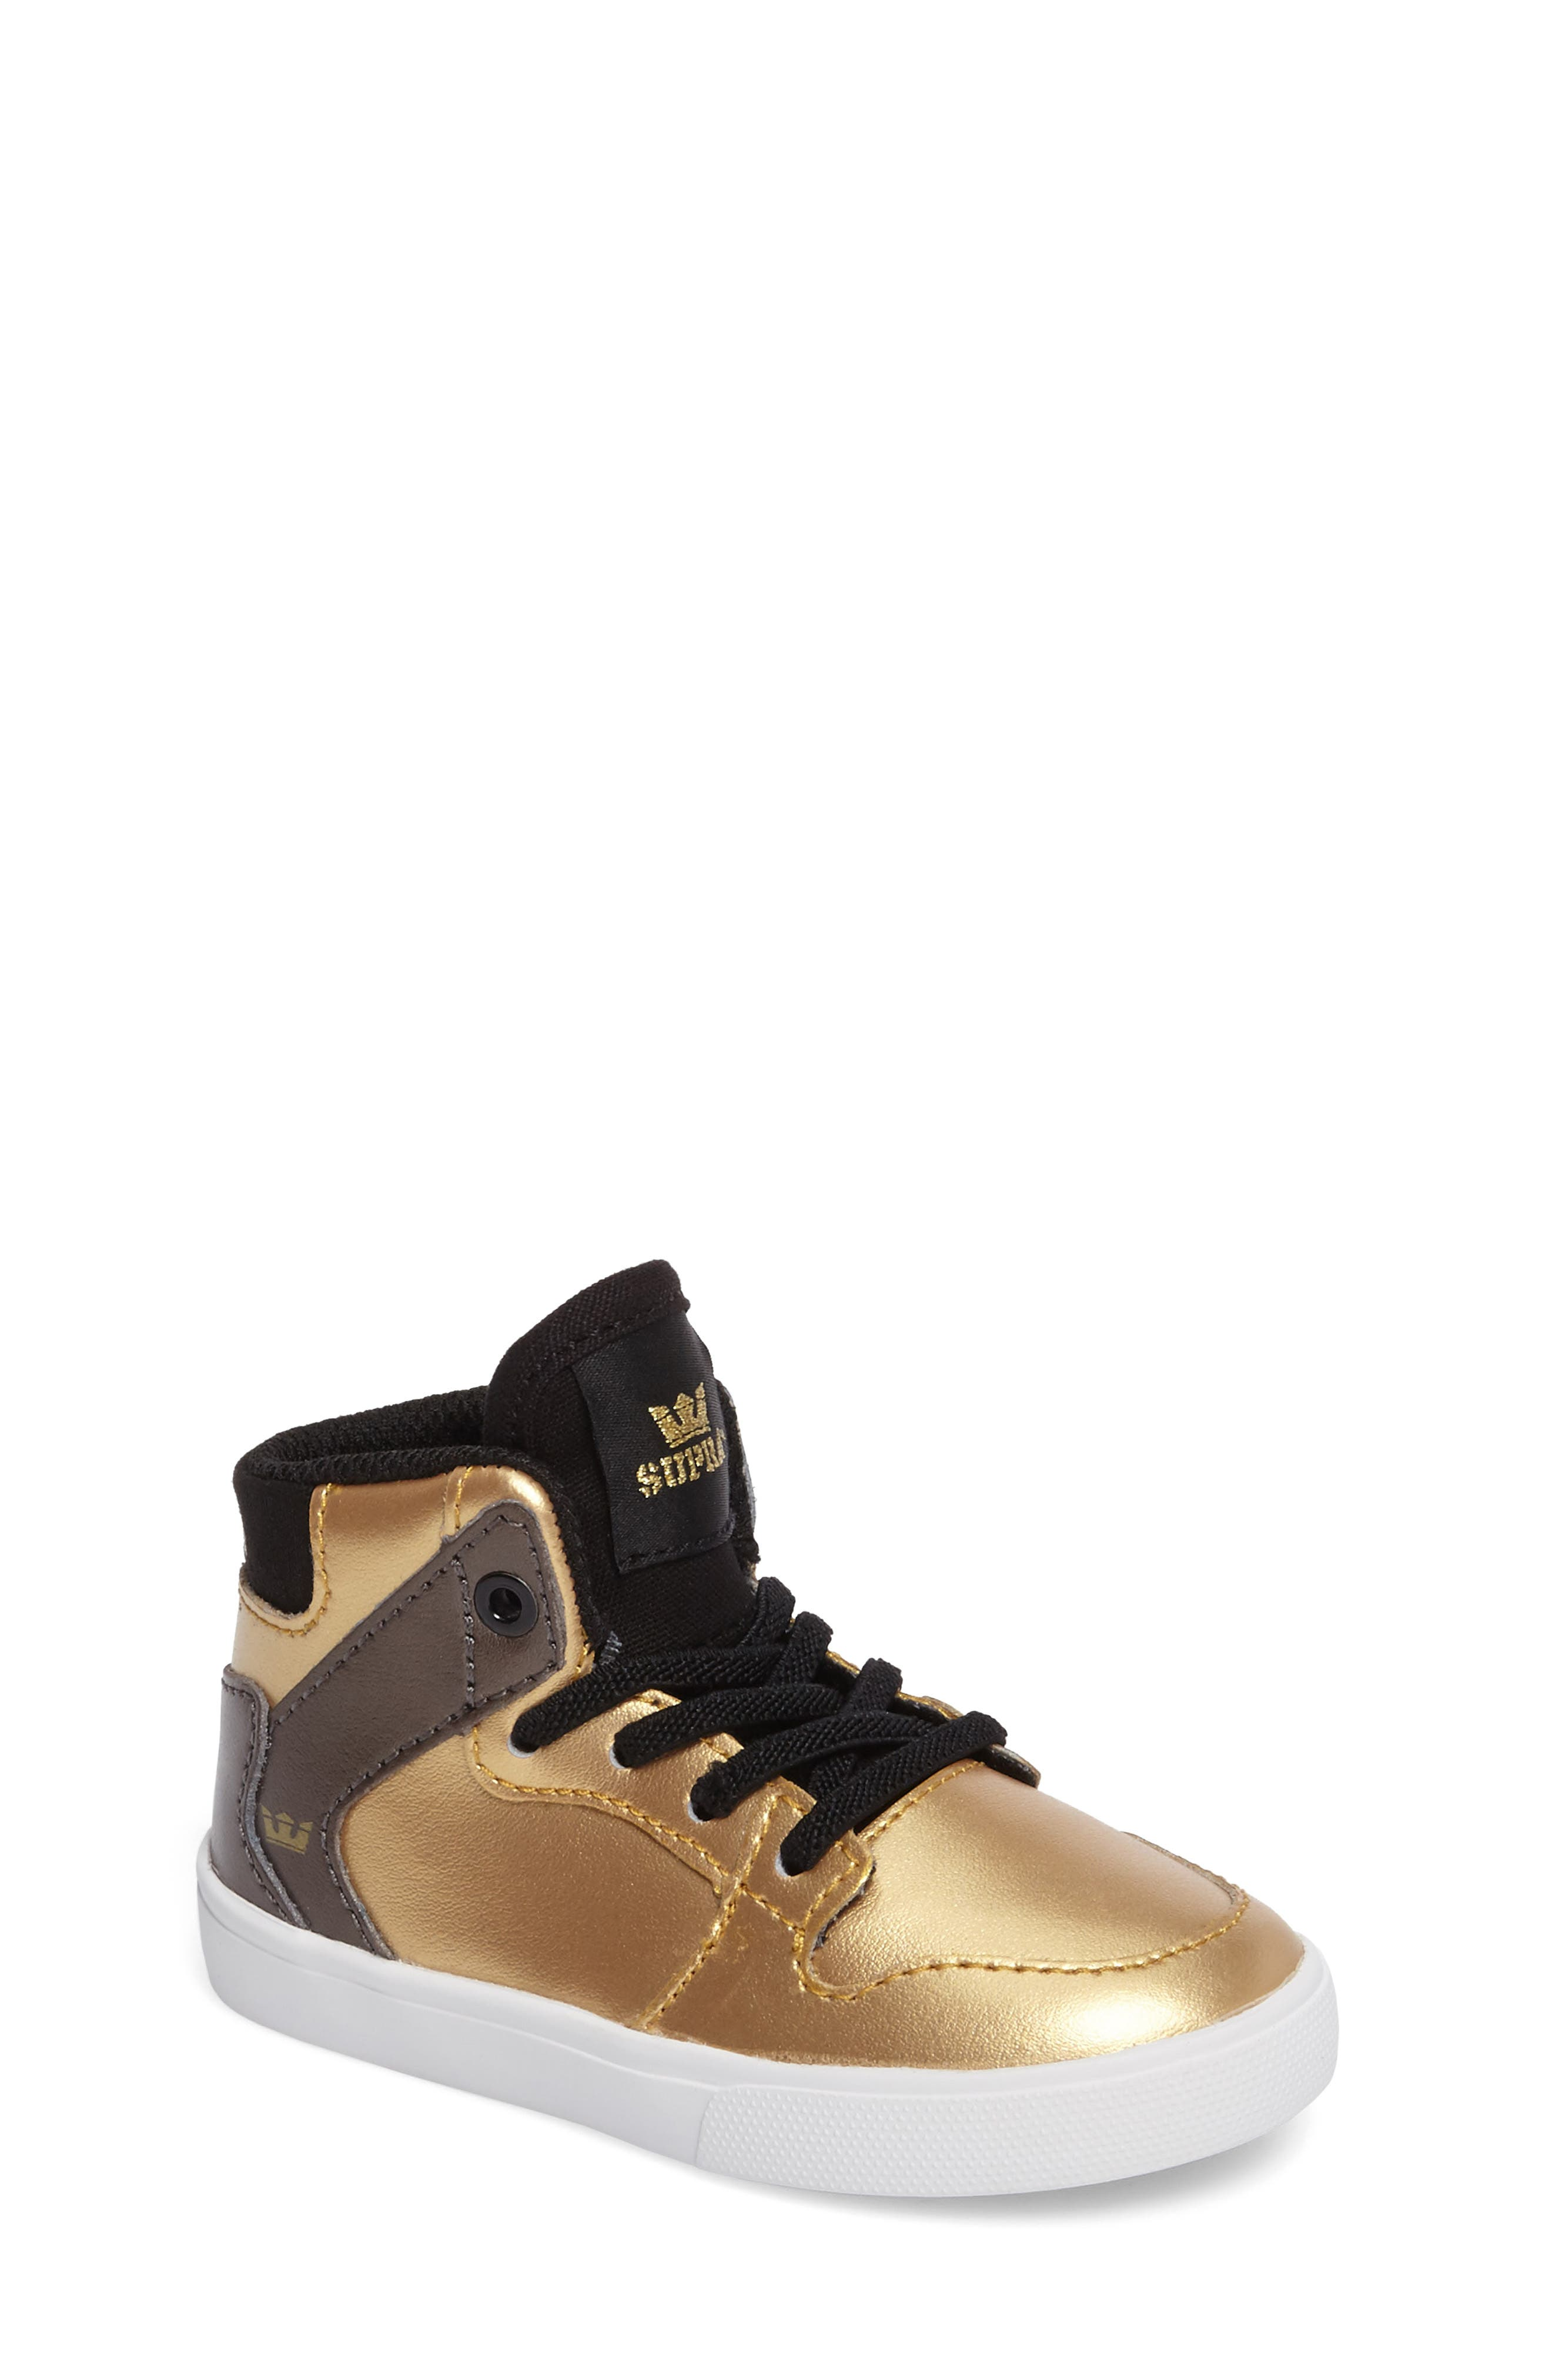 Vaider High Top Sneaker,                         Main,                         color, Gold